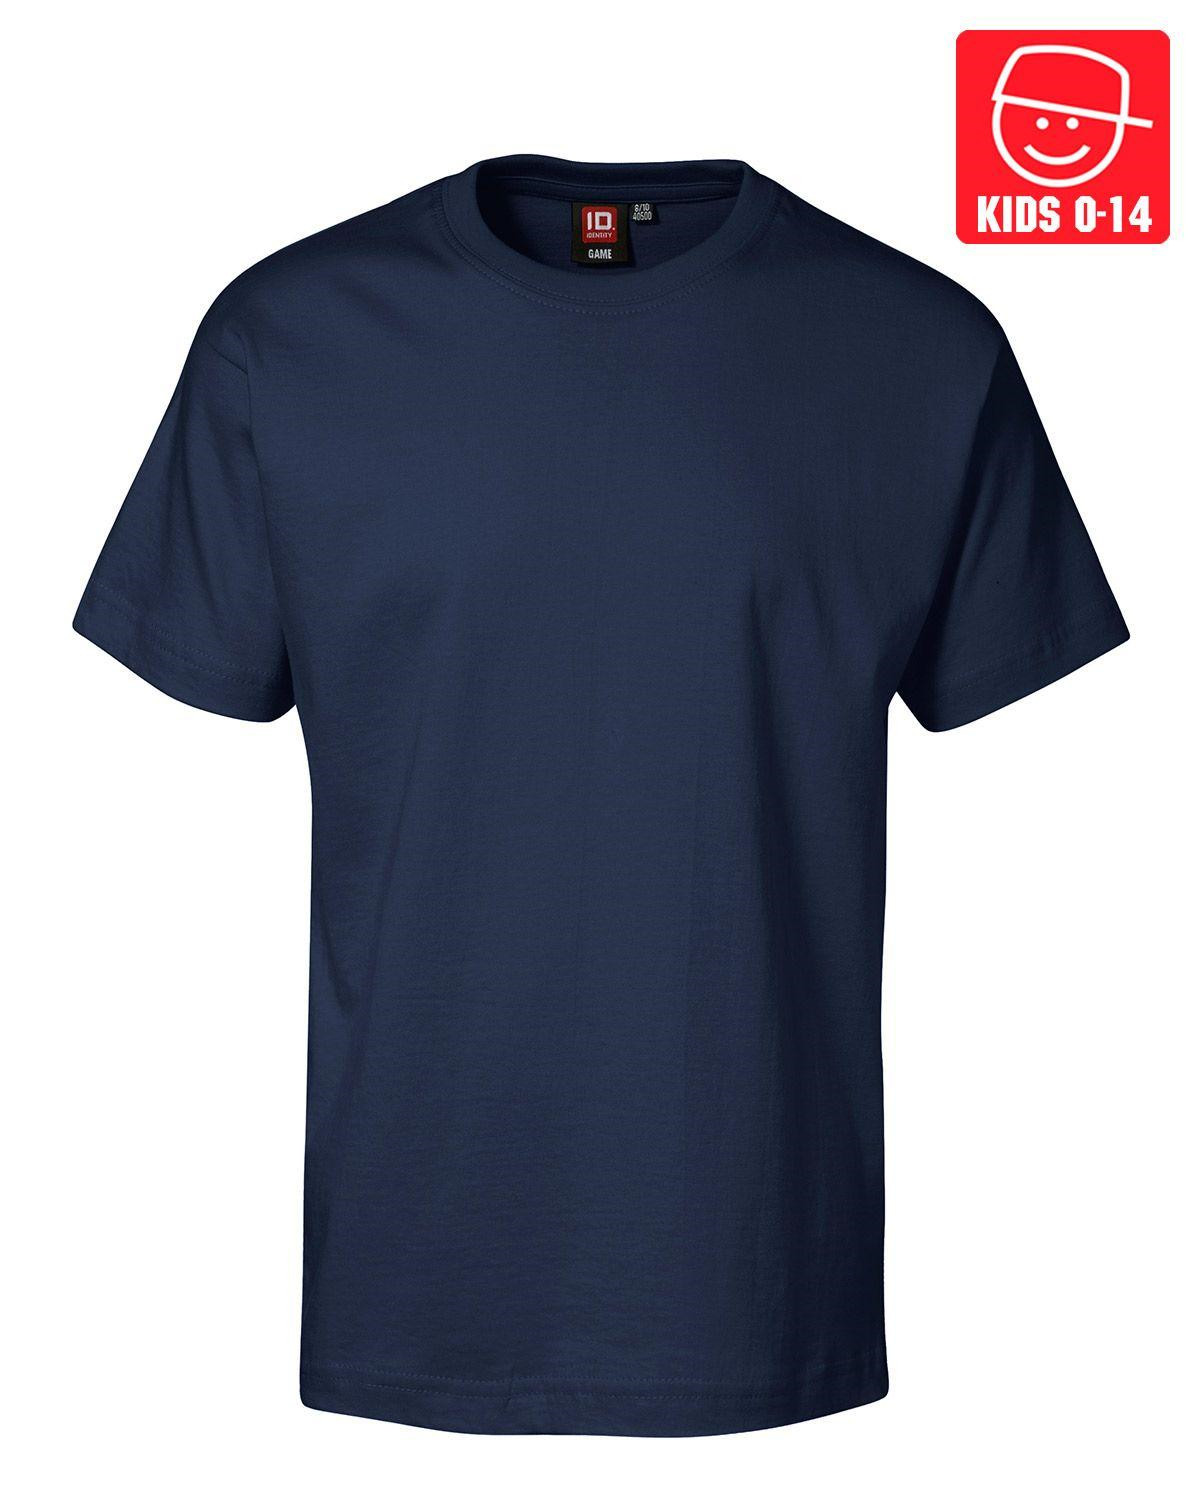 Image of   ID T-shirts (Navy, 128)